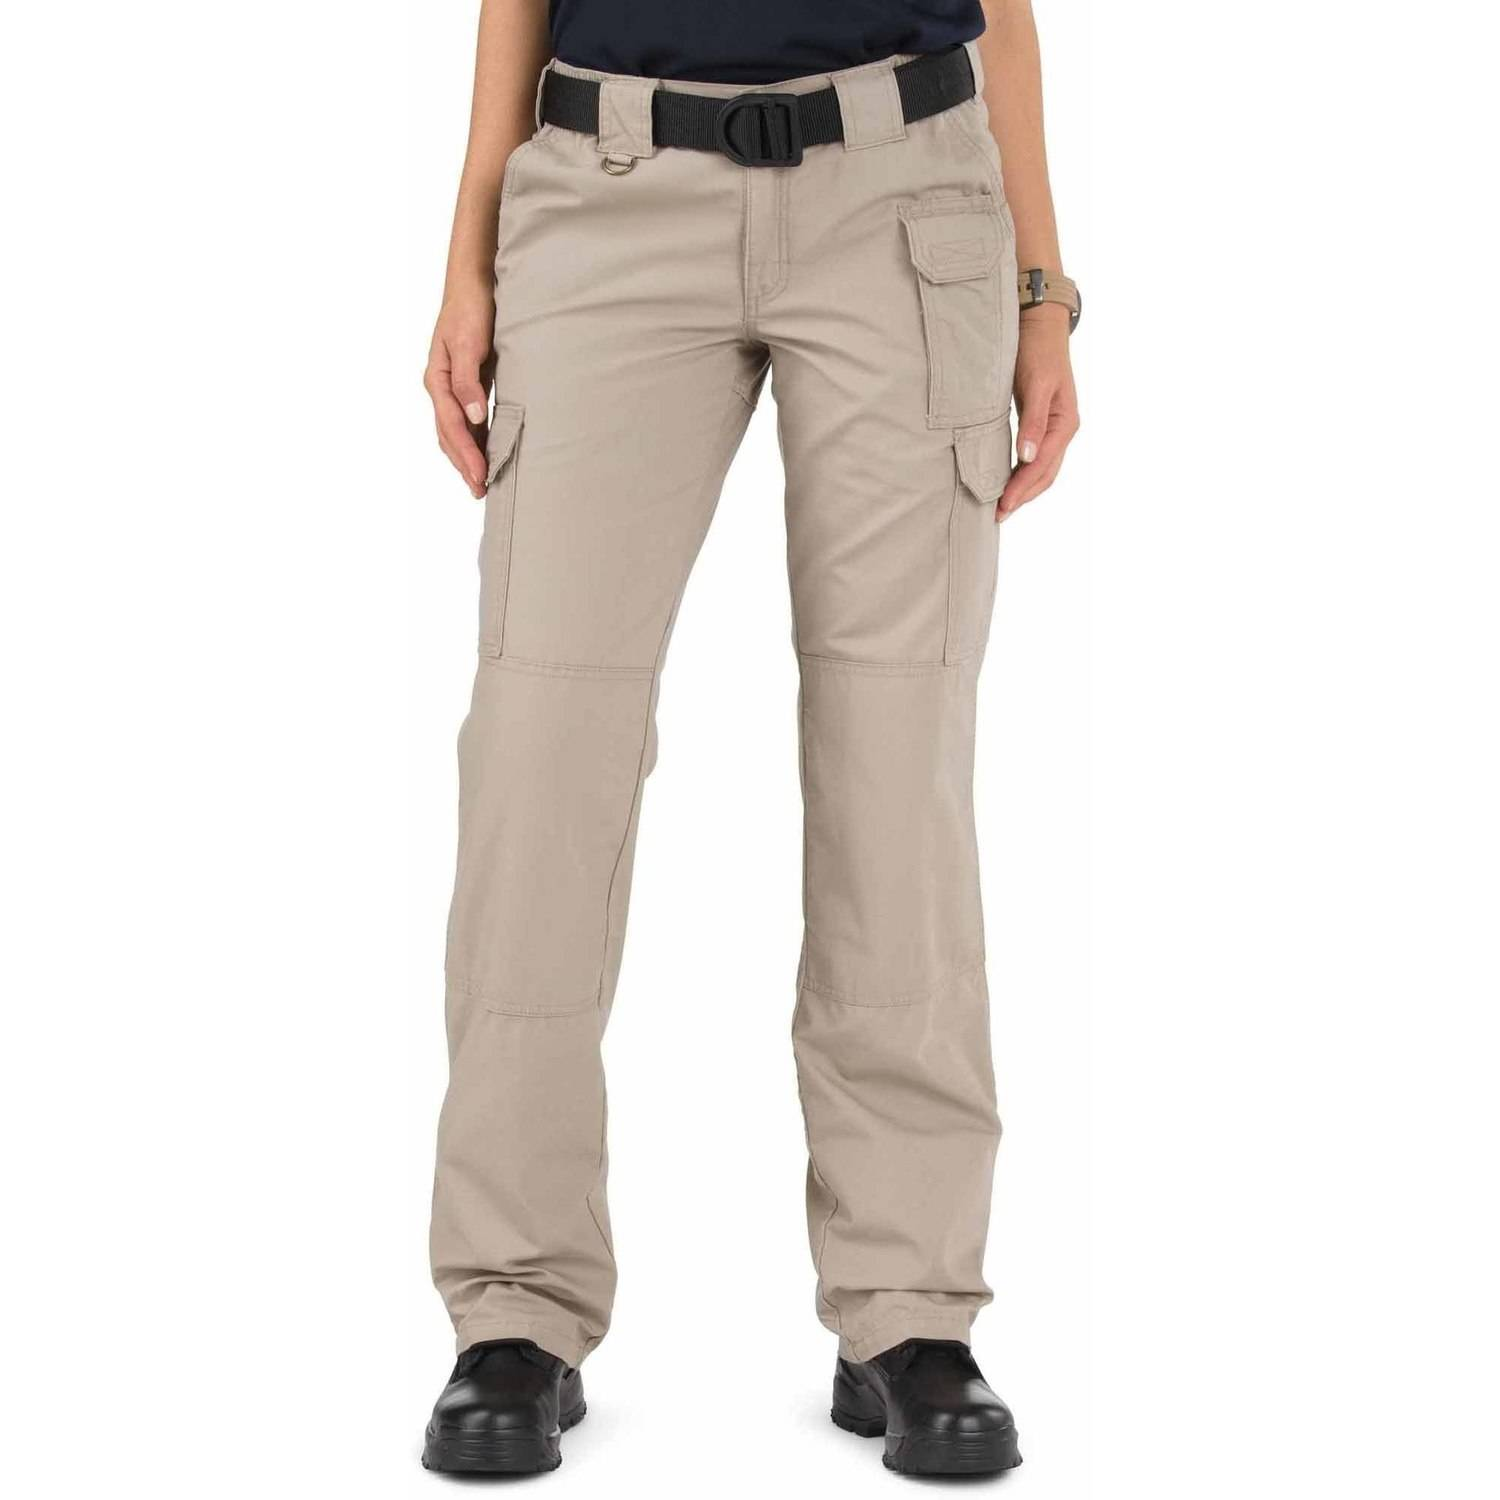 Women's New Fit Tactical Pant, Khaki by 5.11 Tactical